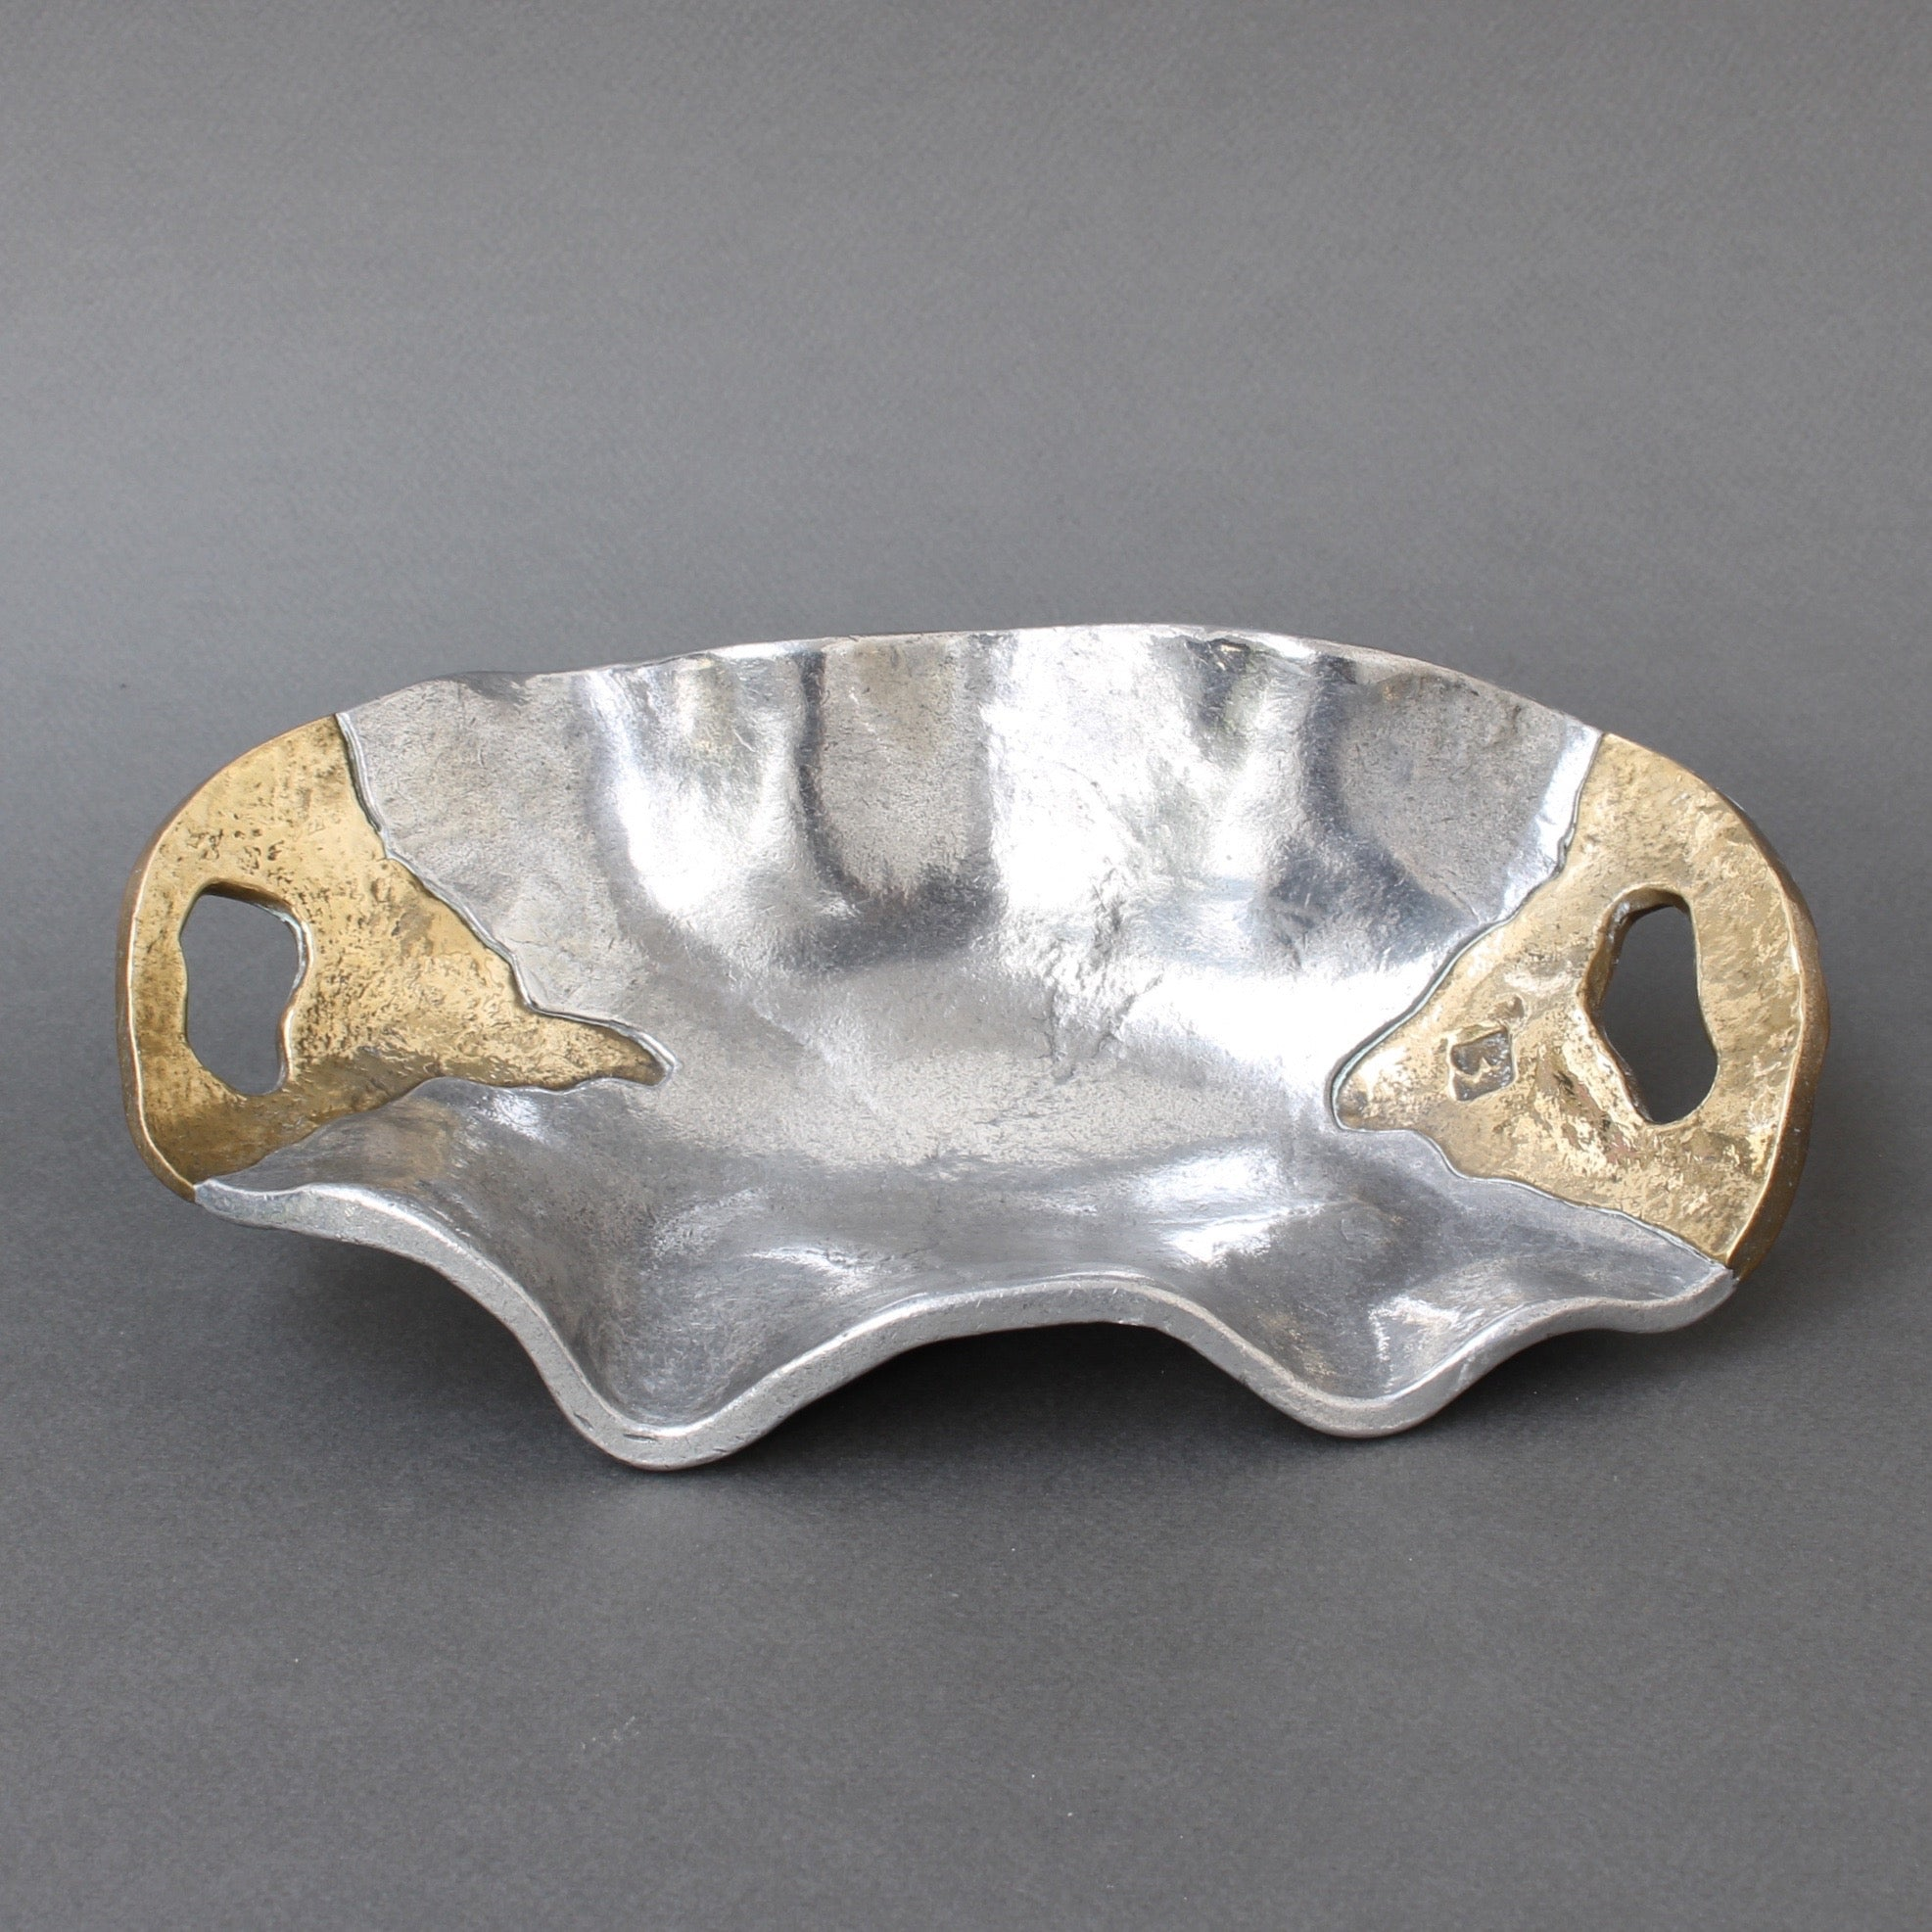 Aluminium and Brass Brutalist Style Tray (Circa 1970s)